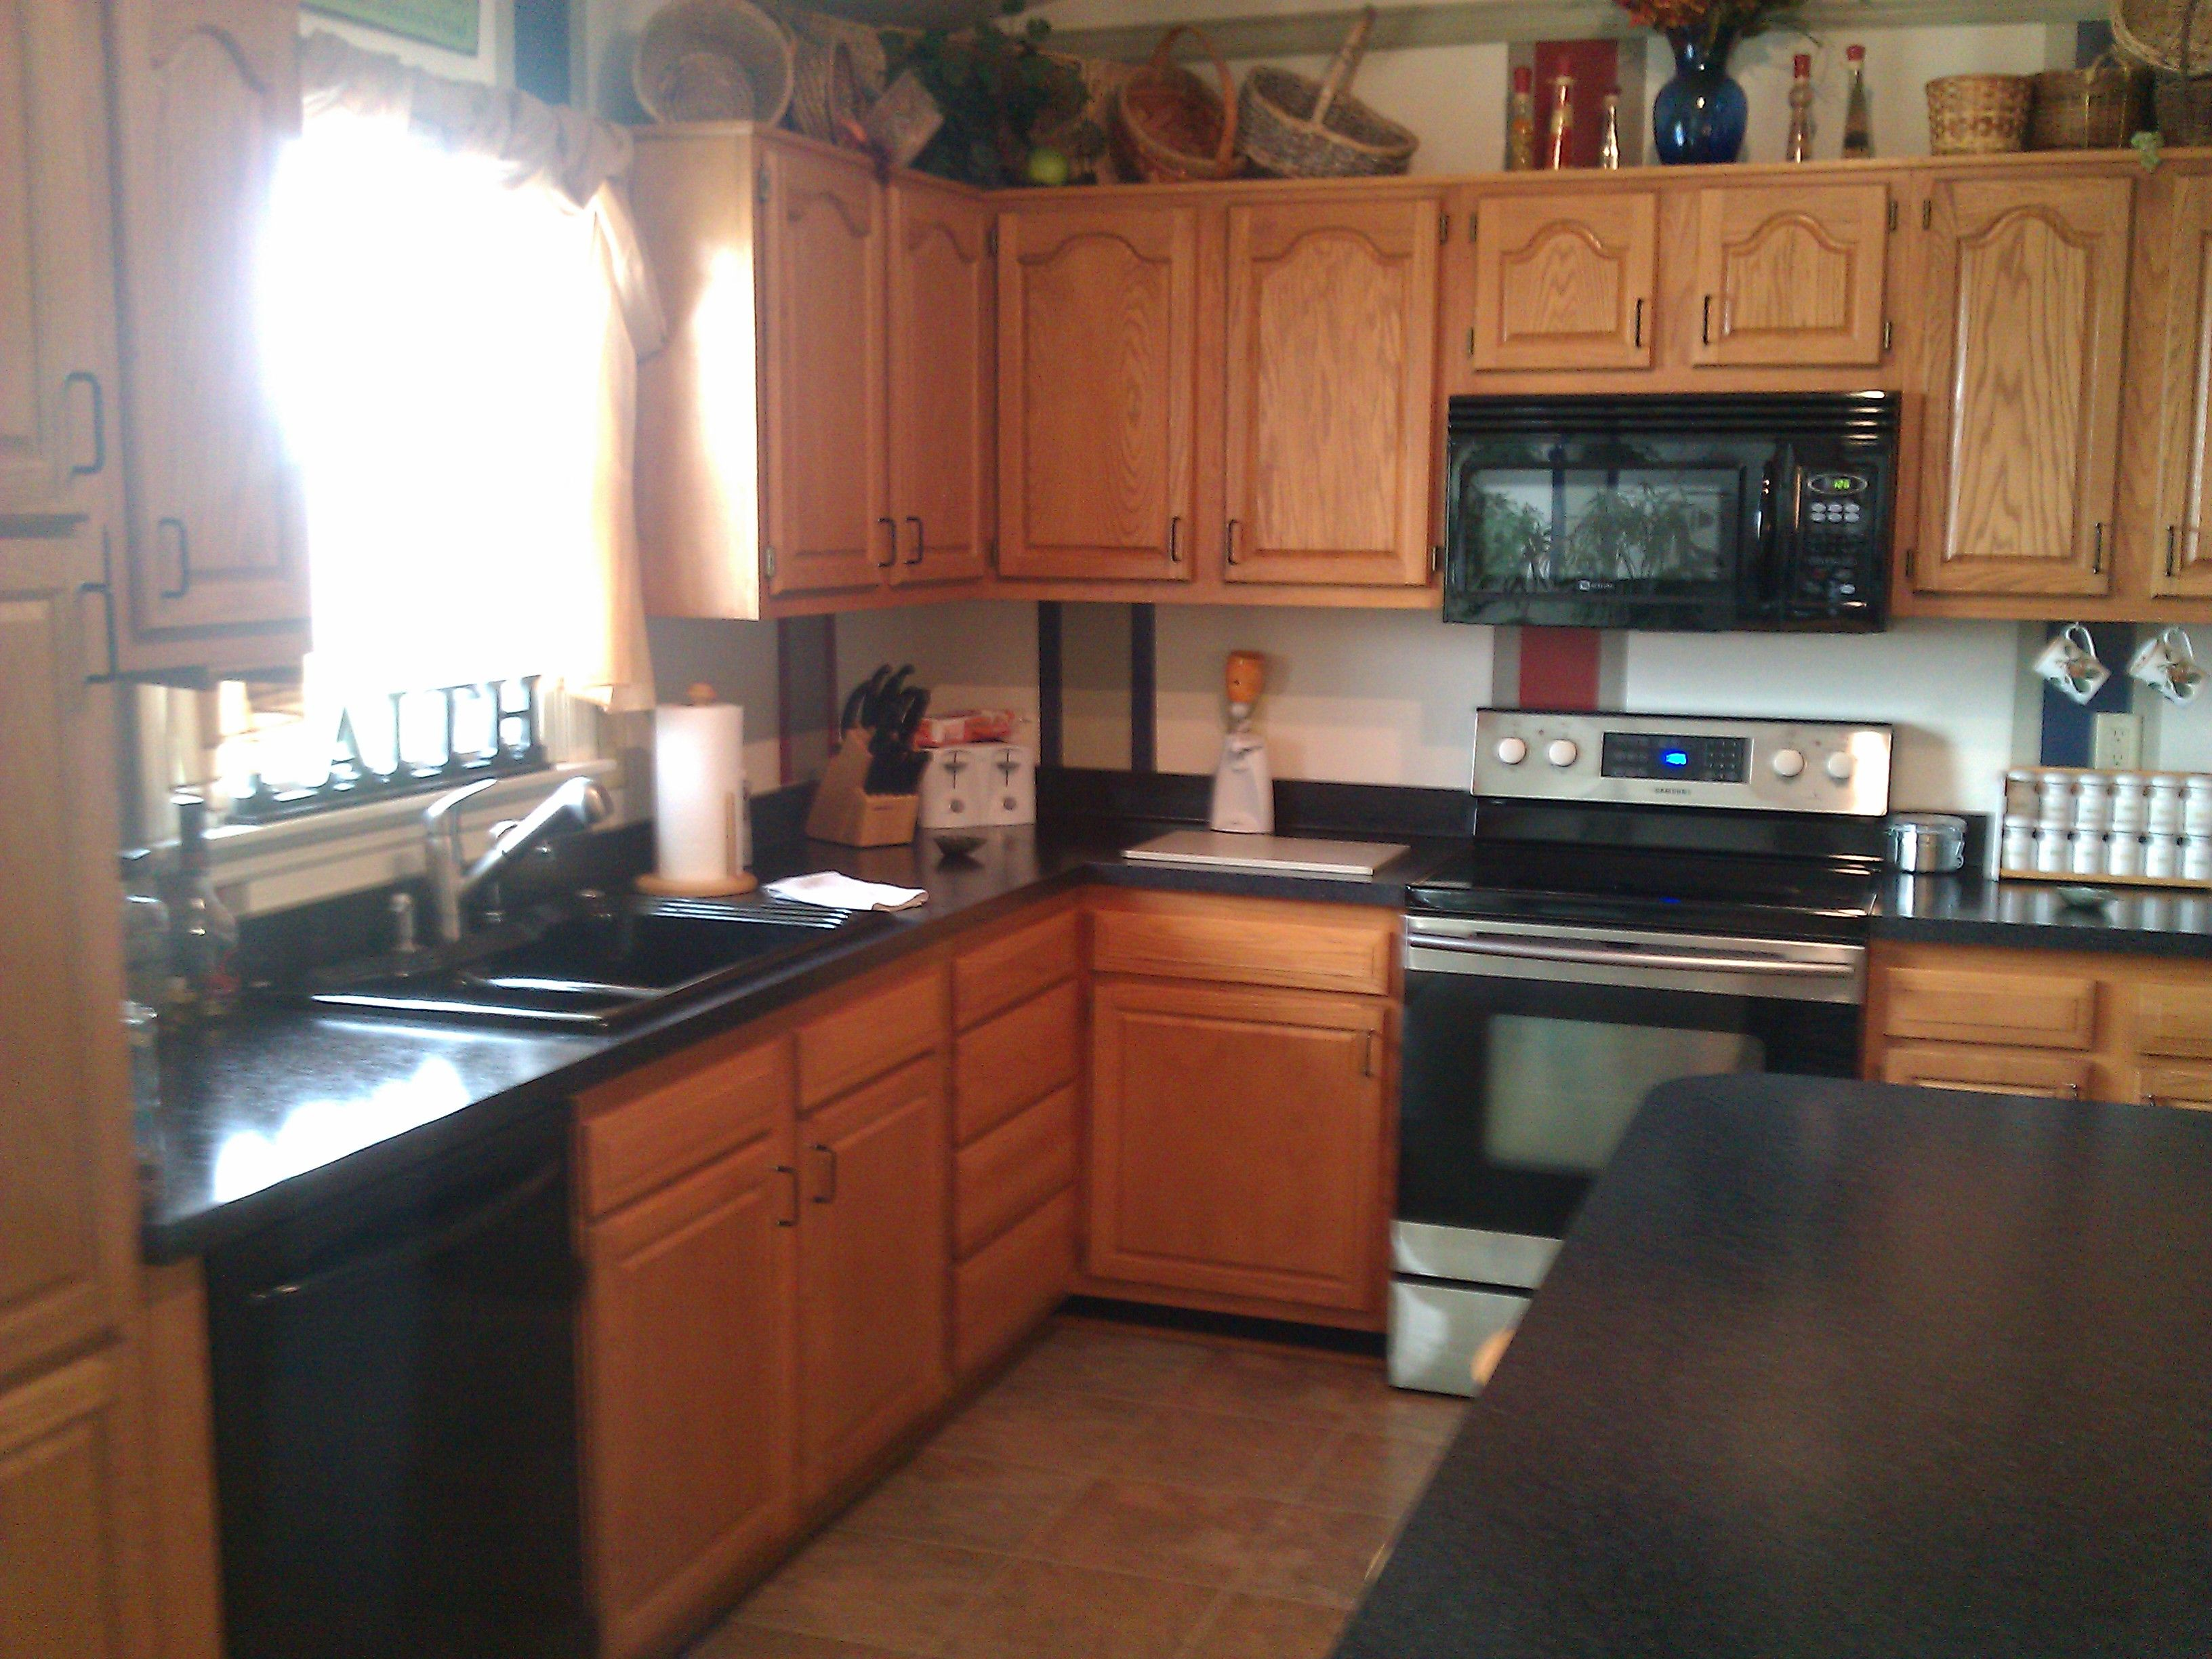 new countertops all the way around...2012